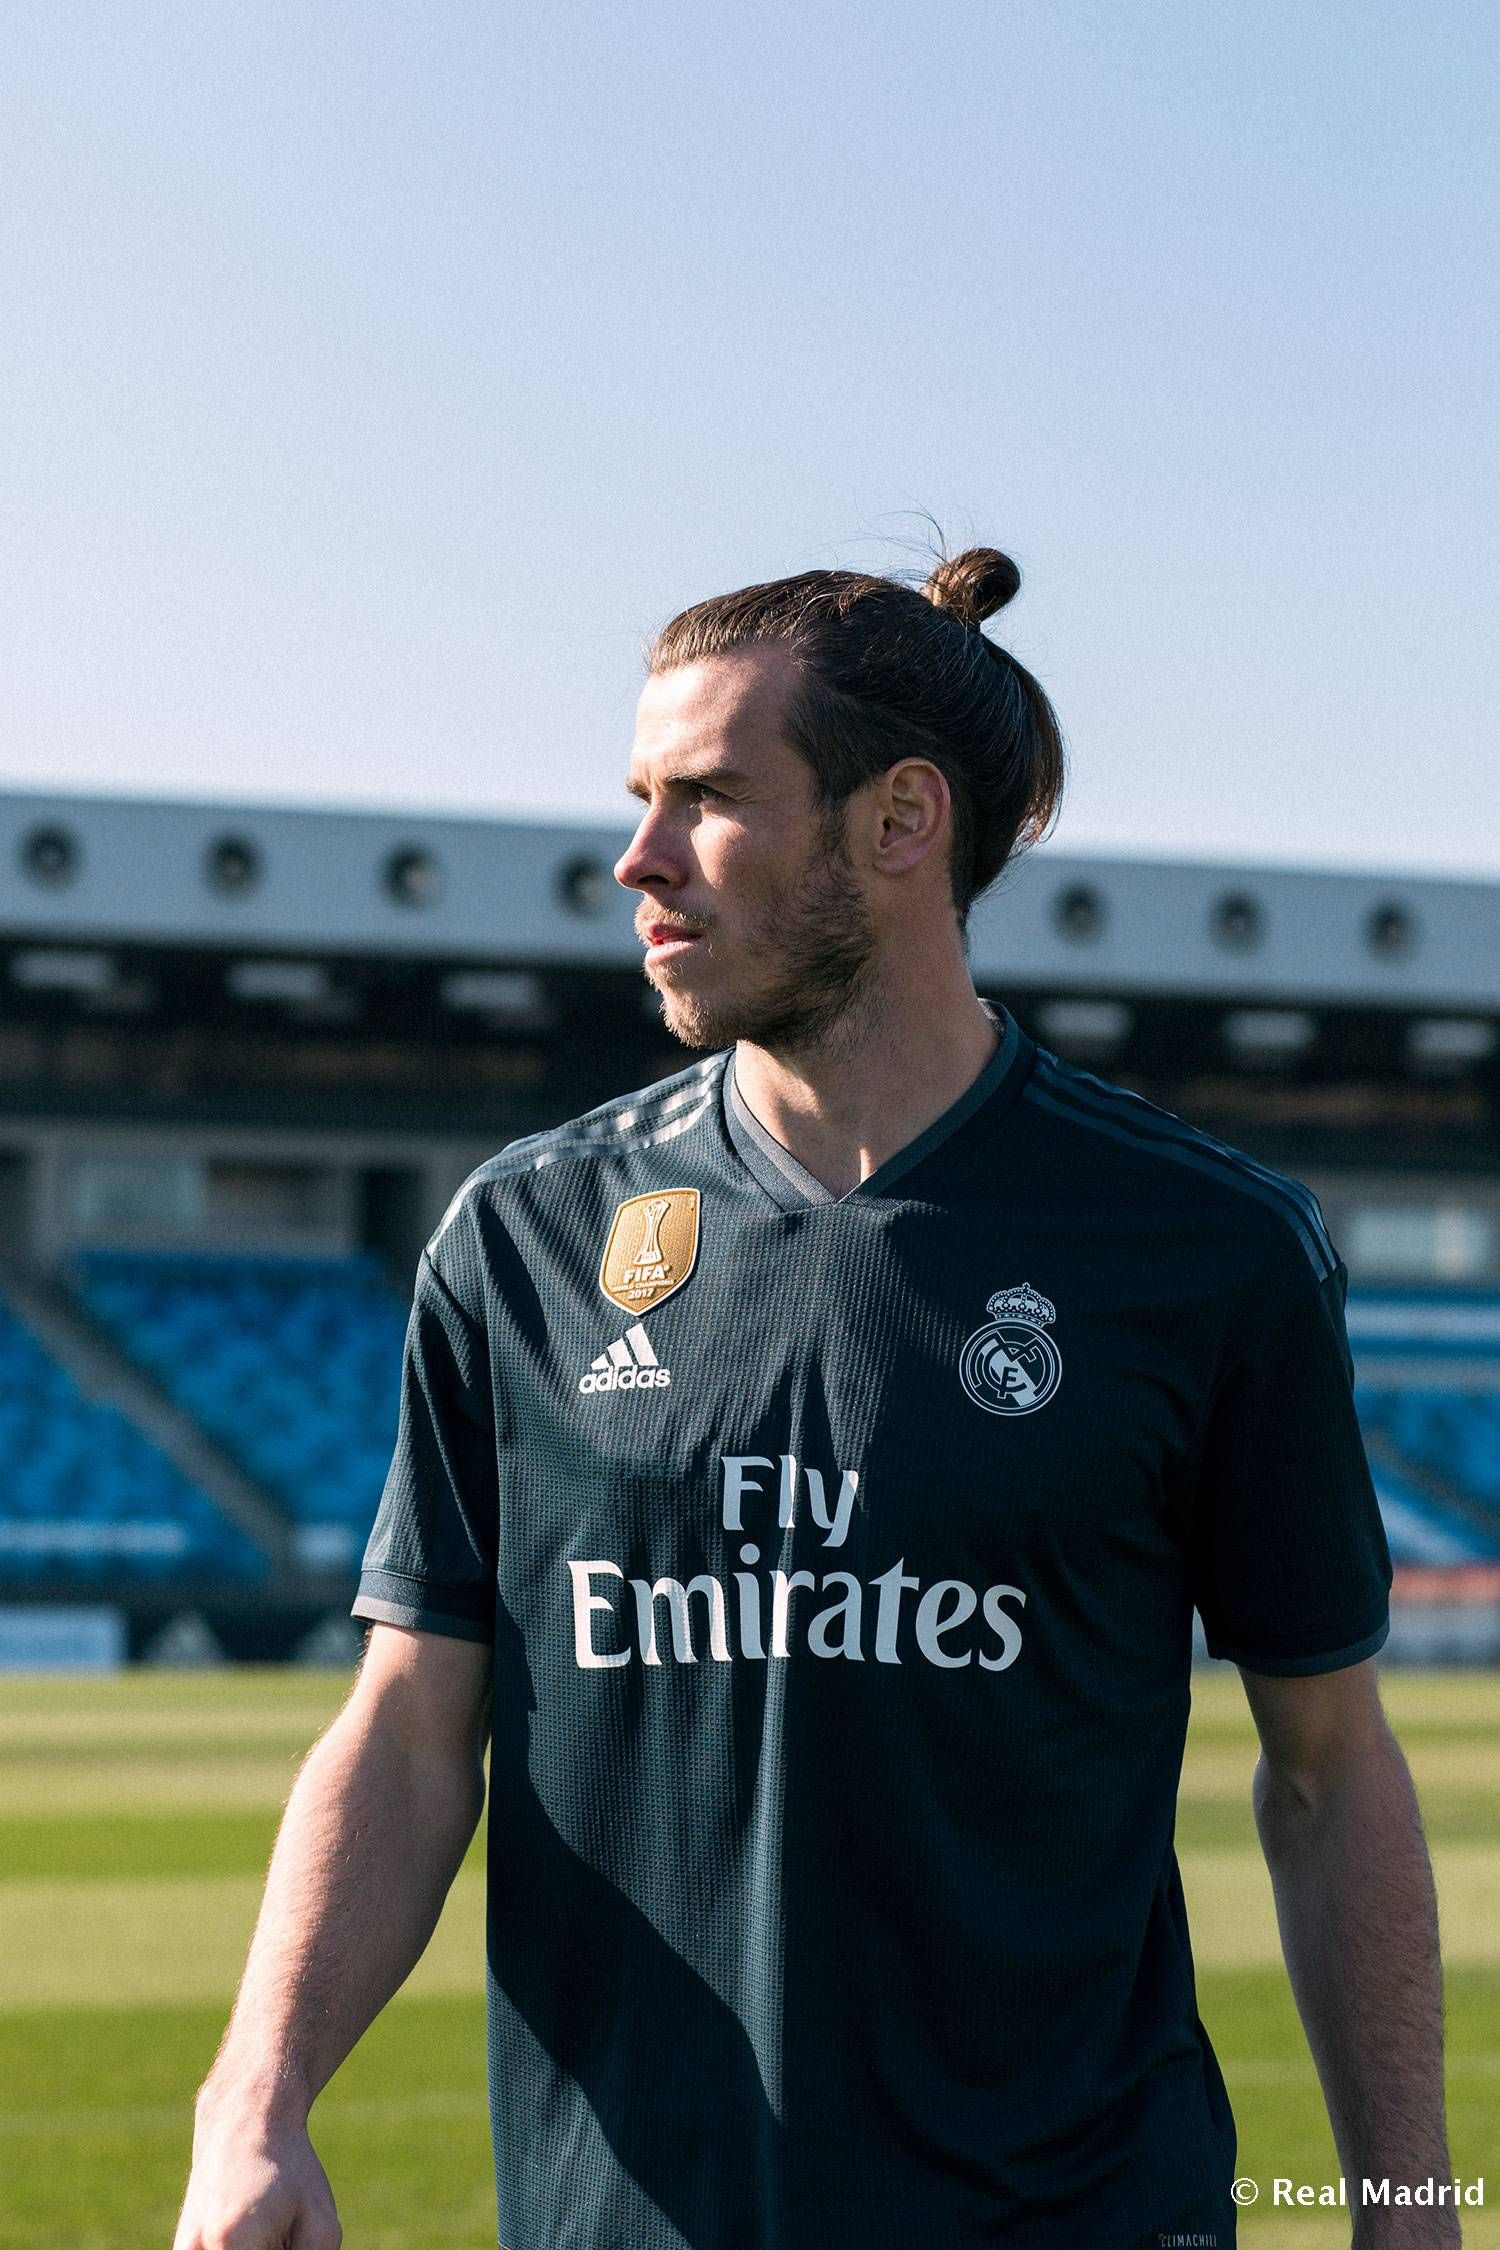 Heres The New Shirt For The 2018 19 Season Photos Real Madrid Cf Real Madrid Shirt Gareth Bale Real Madrid